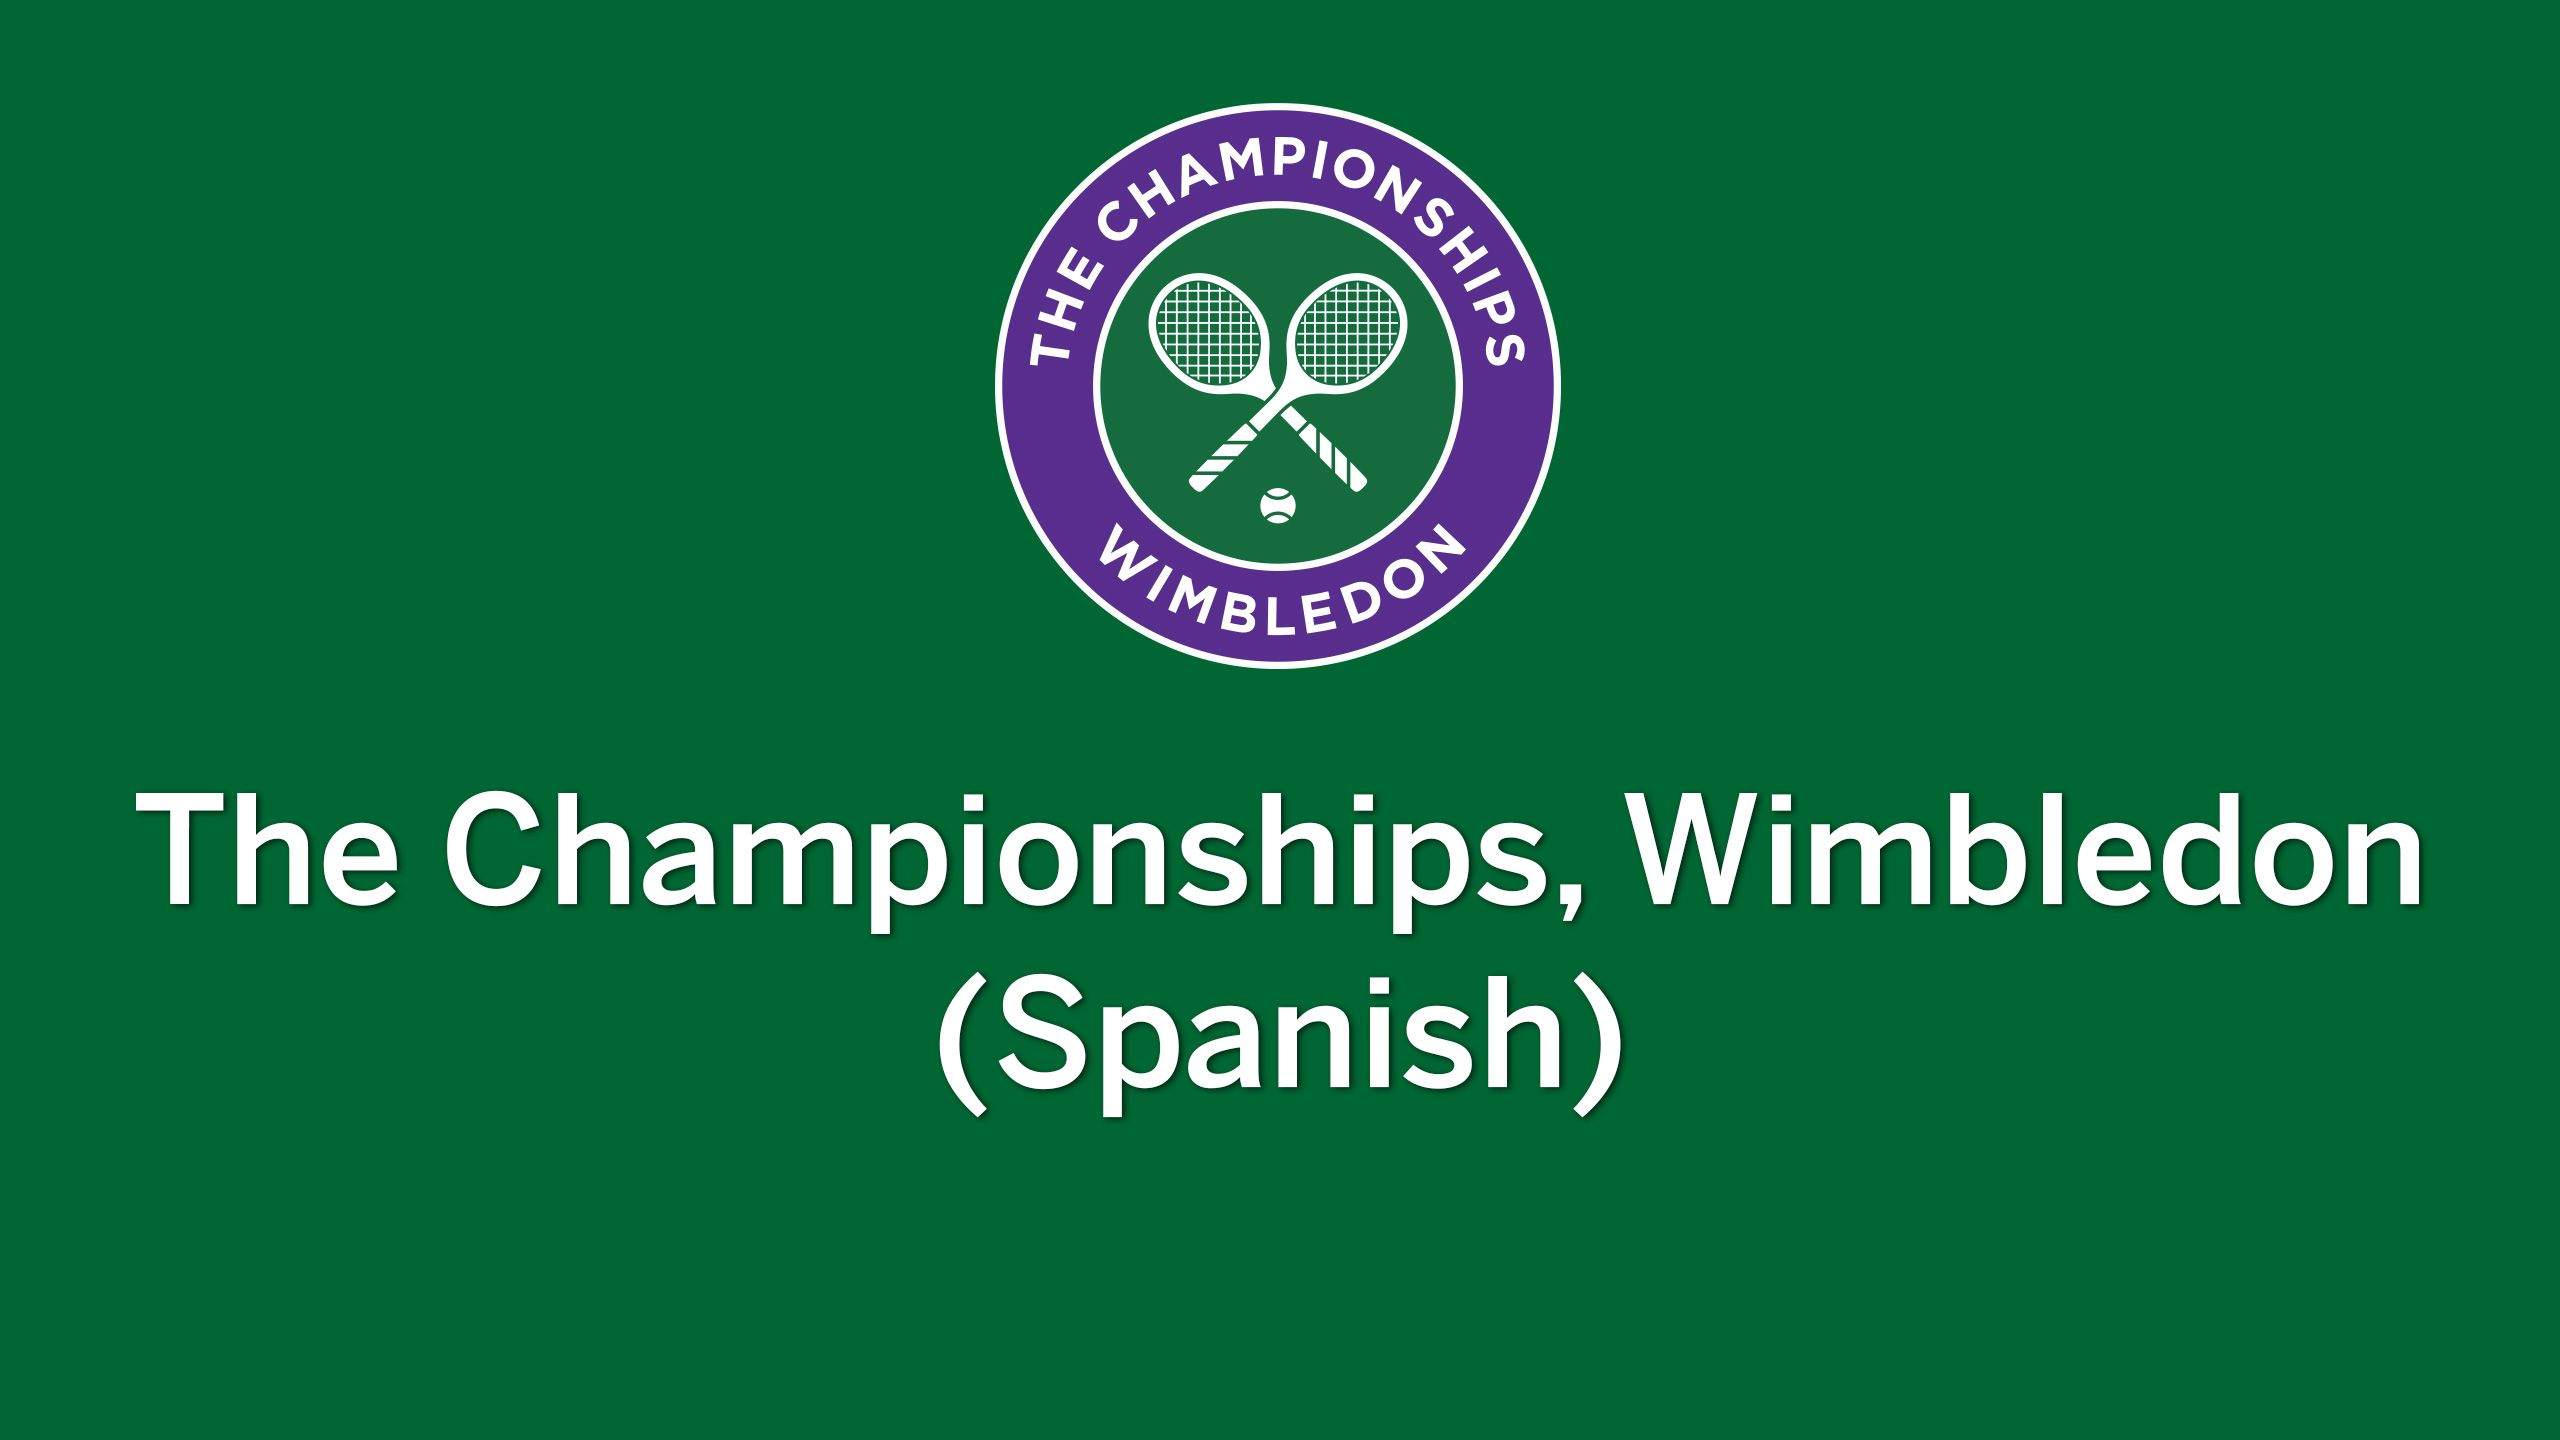 Wimbledon Tennis Championships - In Spanish (Ladies' Championship)